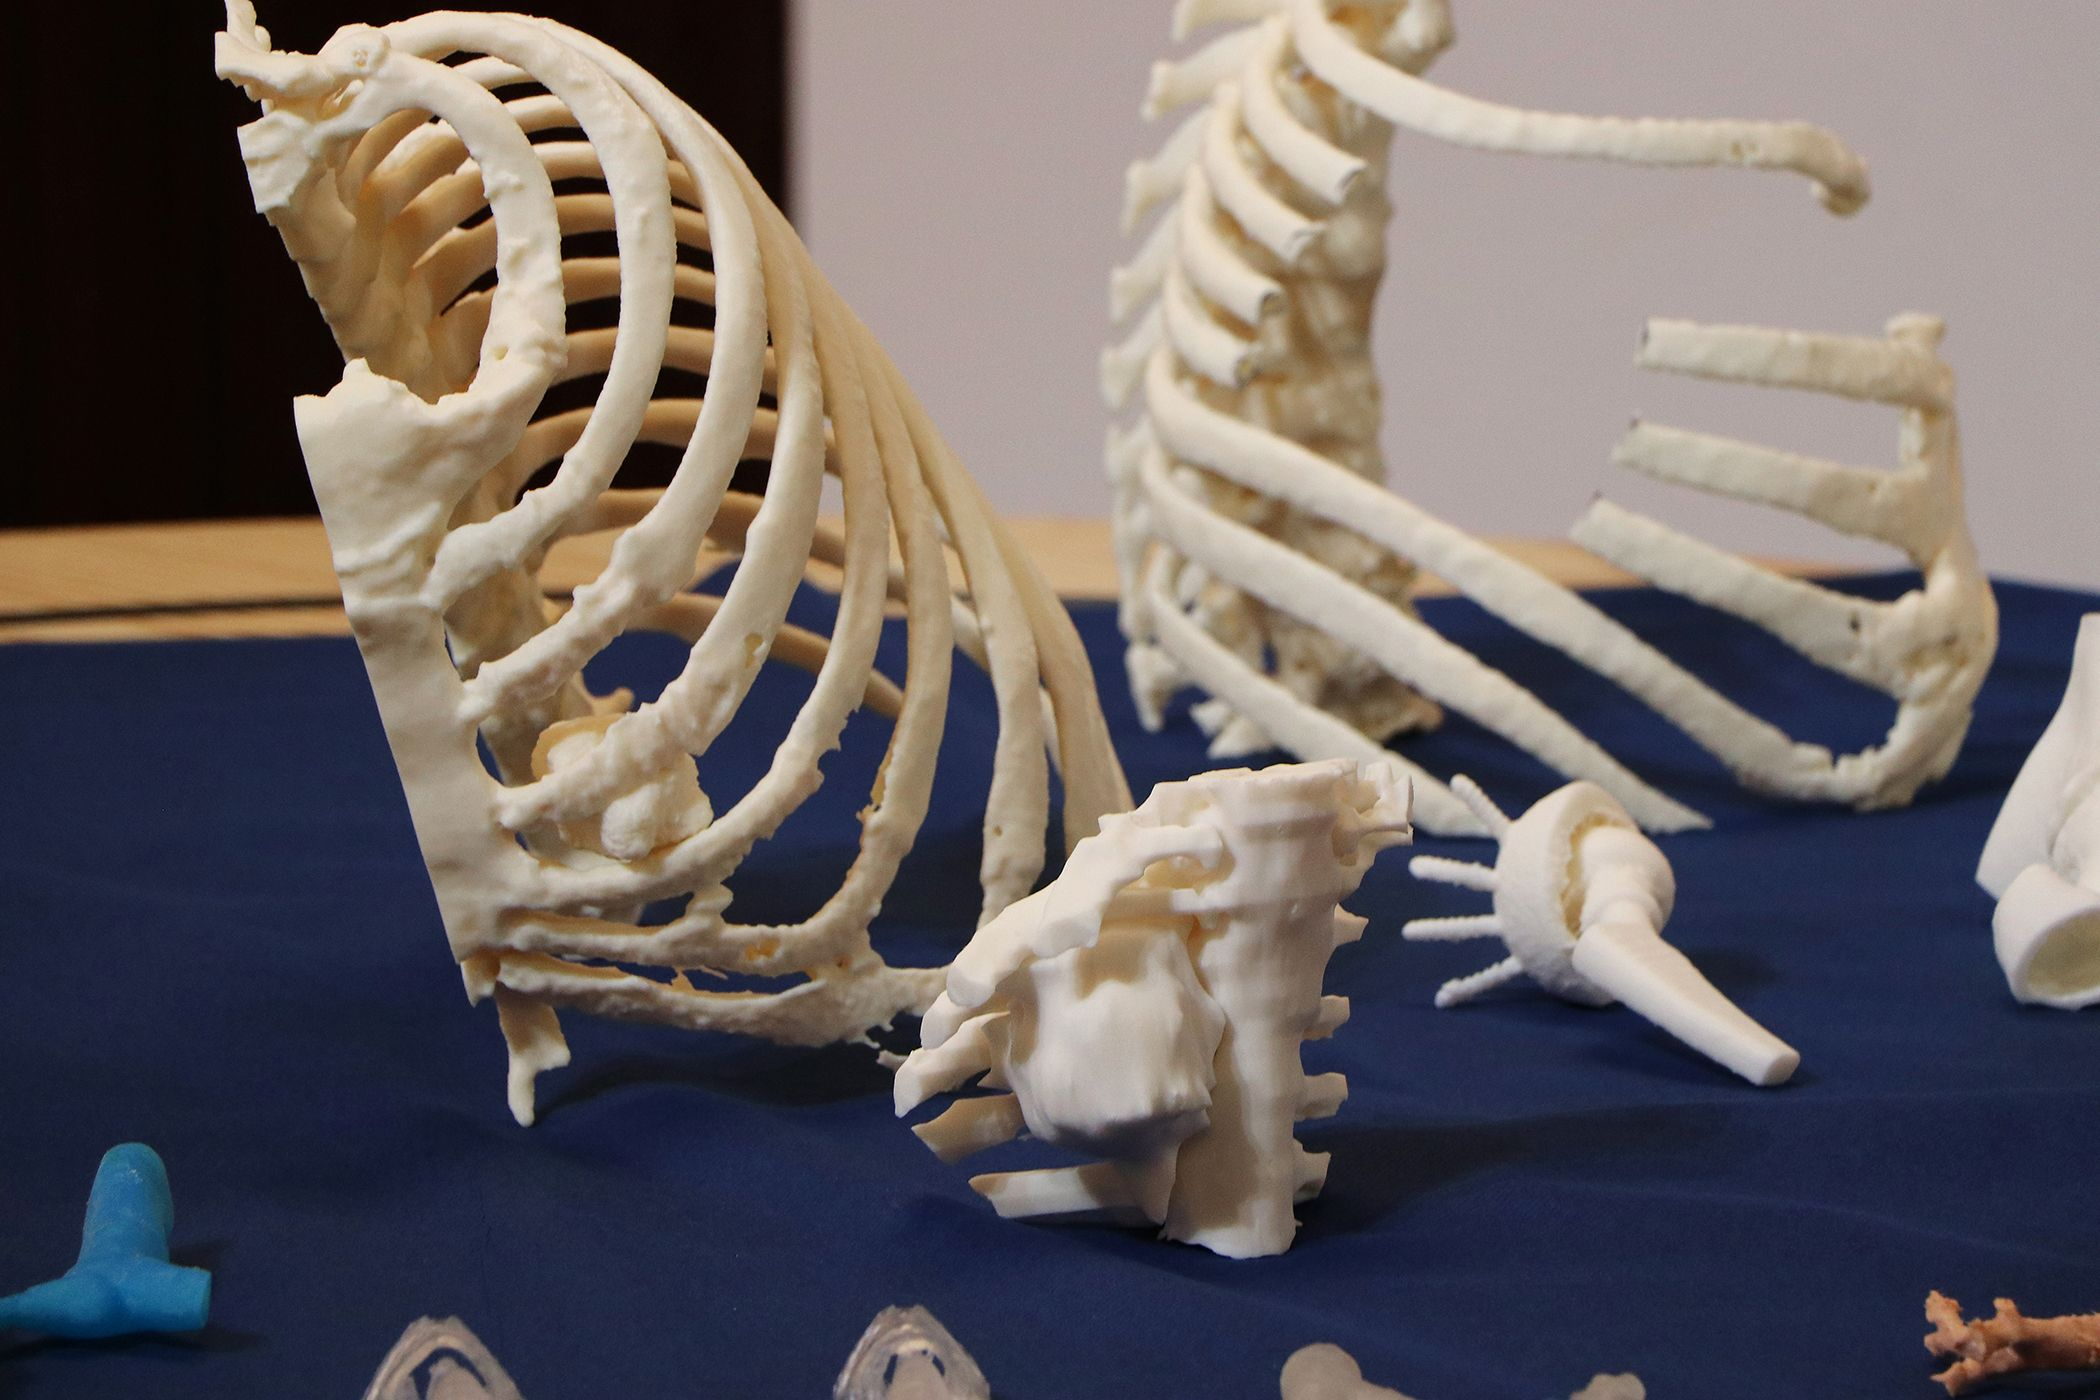 3D printed models of the thoracic wall enable surgeons to plan, perform and perfect the resection on the 3D model ahead of the actual surgery.